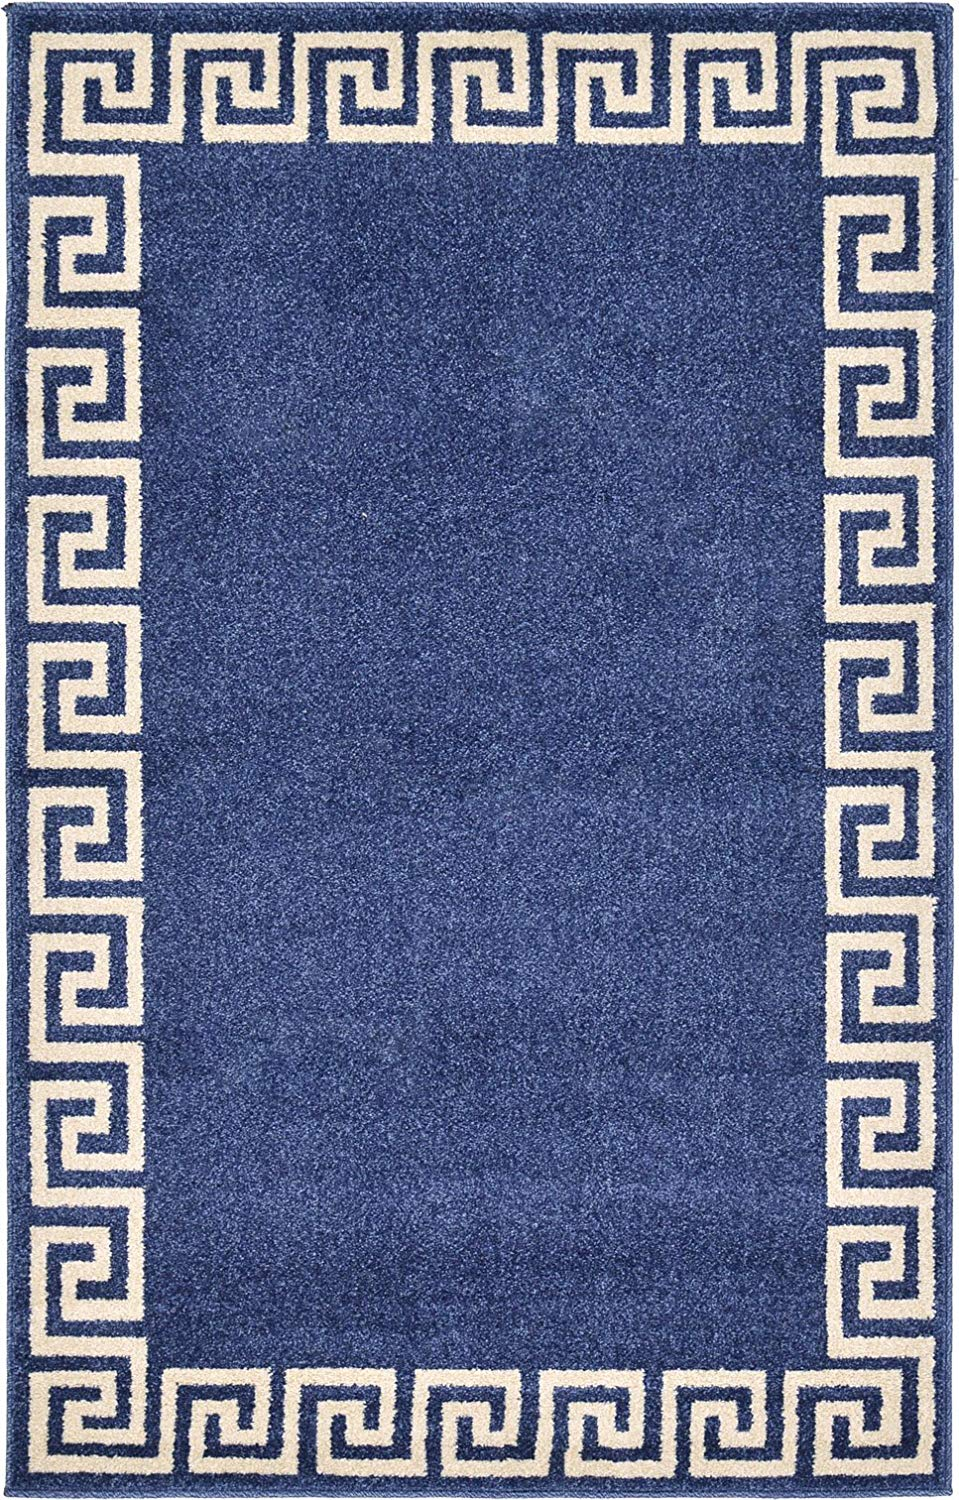 A2Z Rug Modern Contemporary Area Rug Geometric Navy Blue 3' 3'' x 5' 3'' FT Santorini Collection Rugs - rugs for living room - rugs for dining room & bedroom - Floor Carpet